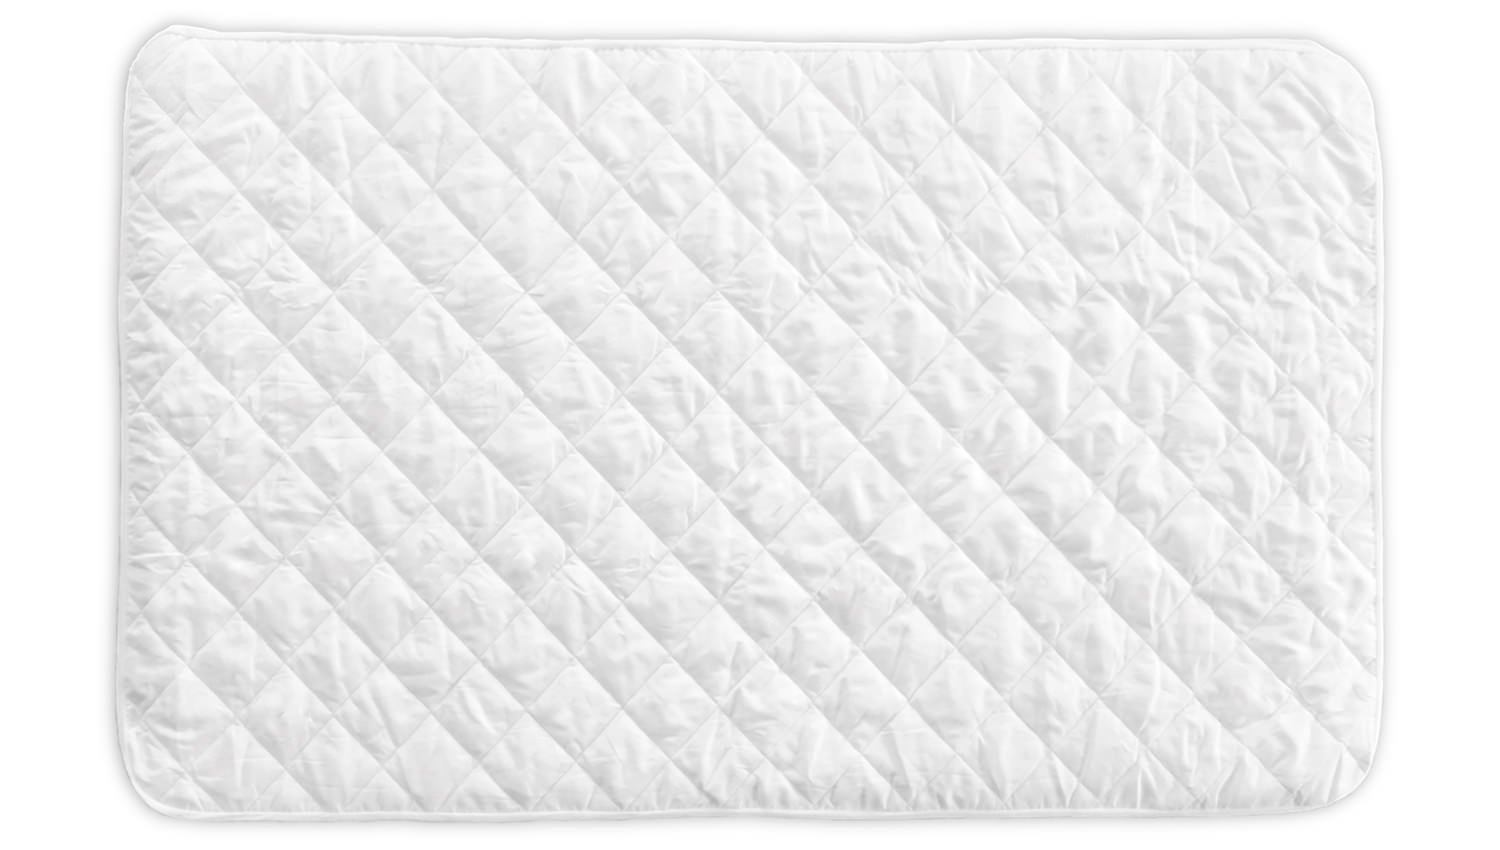 Little One's Pad Pack N Play Crib Mattress Cover - Fits ALL Baby Portable Cribs, Play Yards and Foldable Mattresses - Waterproof, Dryer Safe and Hypoallergenic - Comfy and Soft Fitted Crib Protector